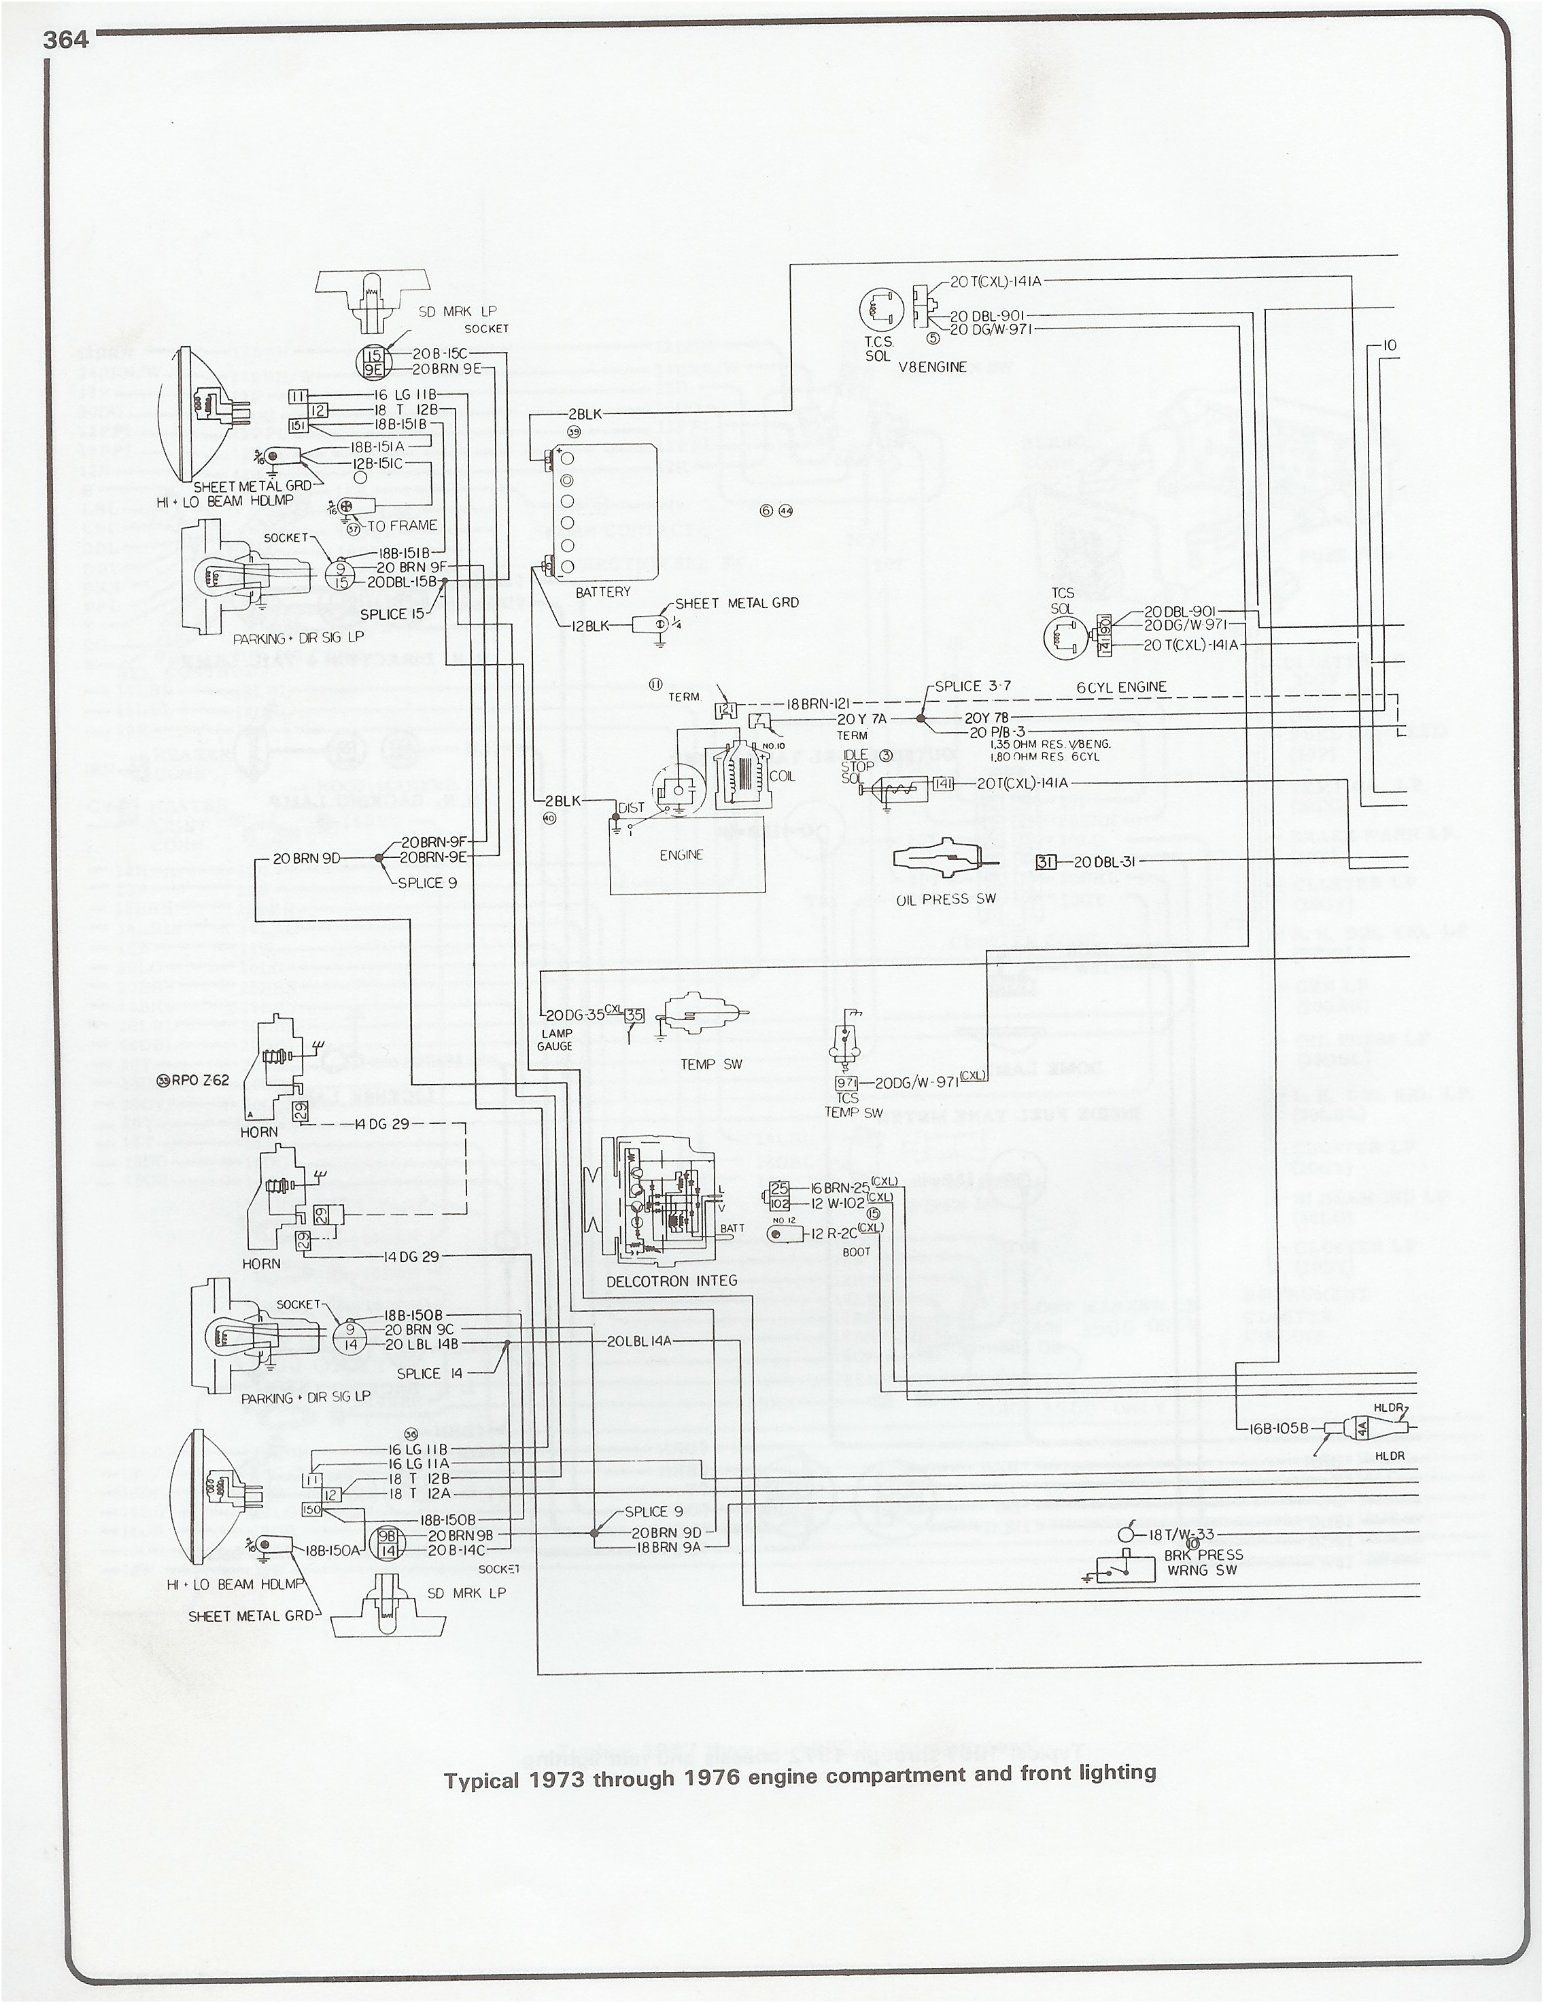 B C C Ab Ae Becc B Faf likewise W Opt besides Corvette Fuse Box Location Sbuledn besides Wheeler World Tech Help Kawasaki Wiring Diagrams moreover Chevy Truck Fuse Box Diagram Truck Wiring Diagram Moreover Chevy Truck Fuse Box Wiring Of Chevy Truck Fuse Box Diagram. on 1980 corvette wiring harness diagram